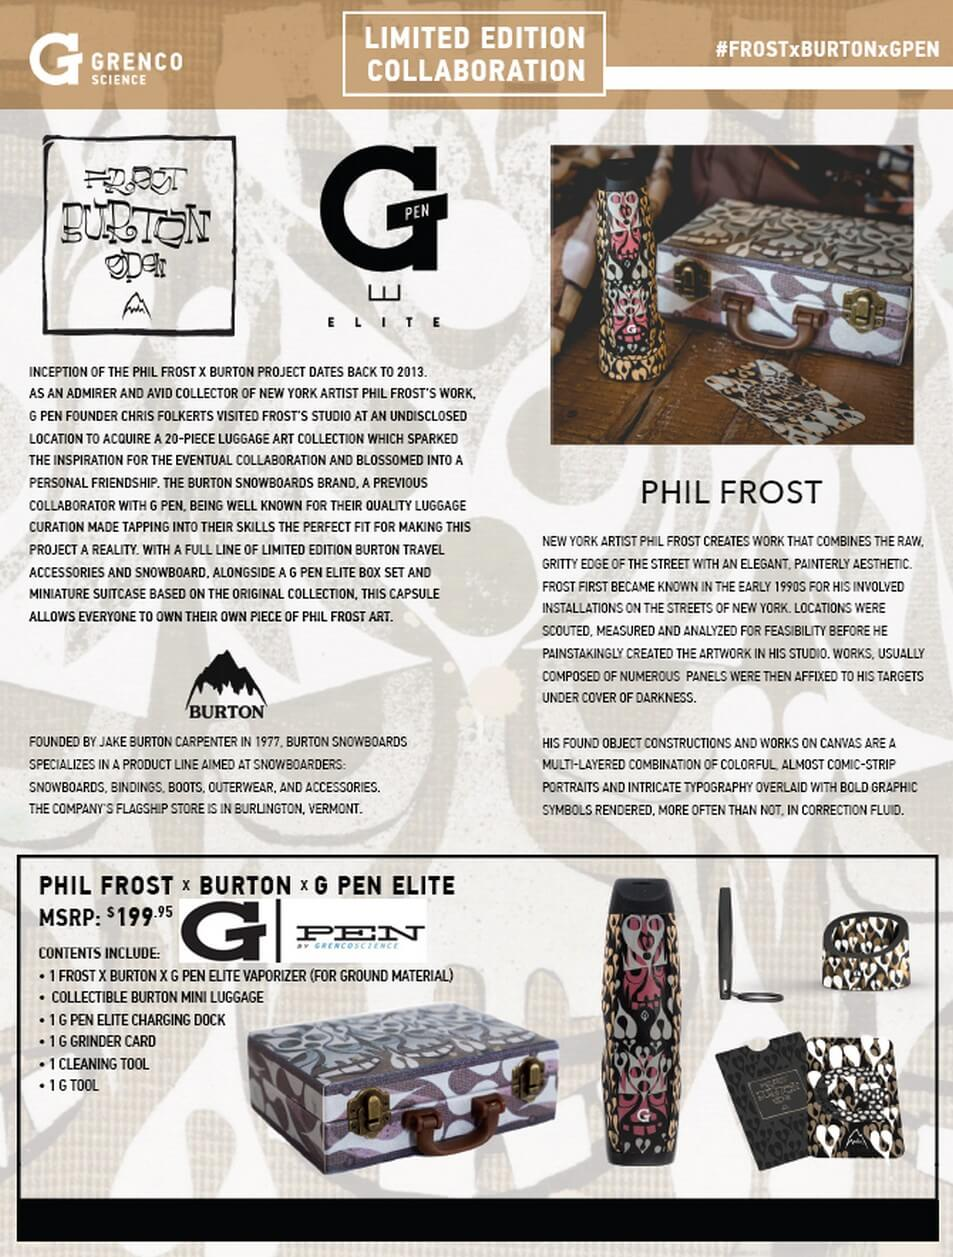 G Pen Elite Phil Frost X Burton Edition Vaporizer Info-Graphics